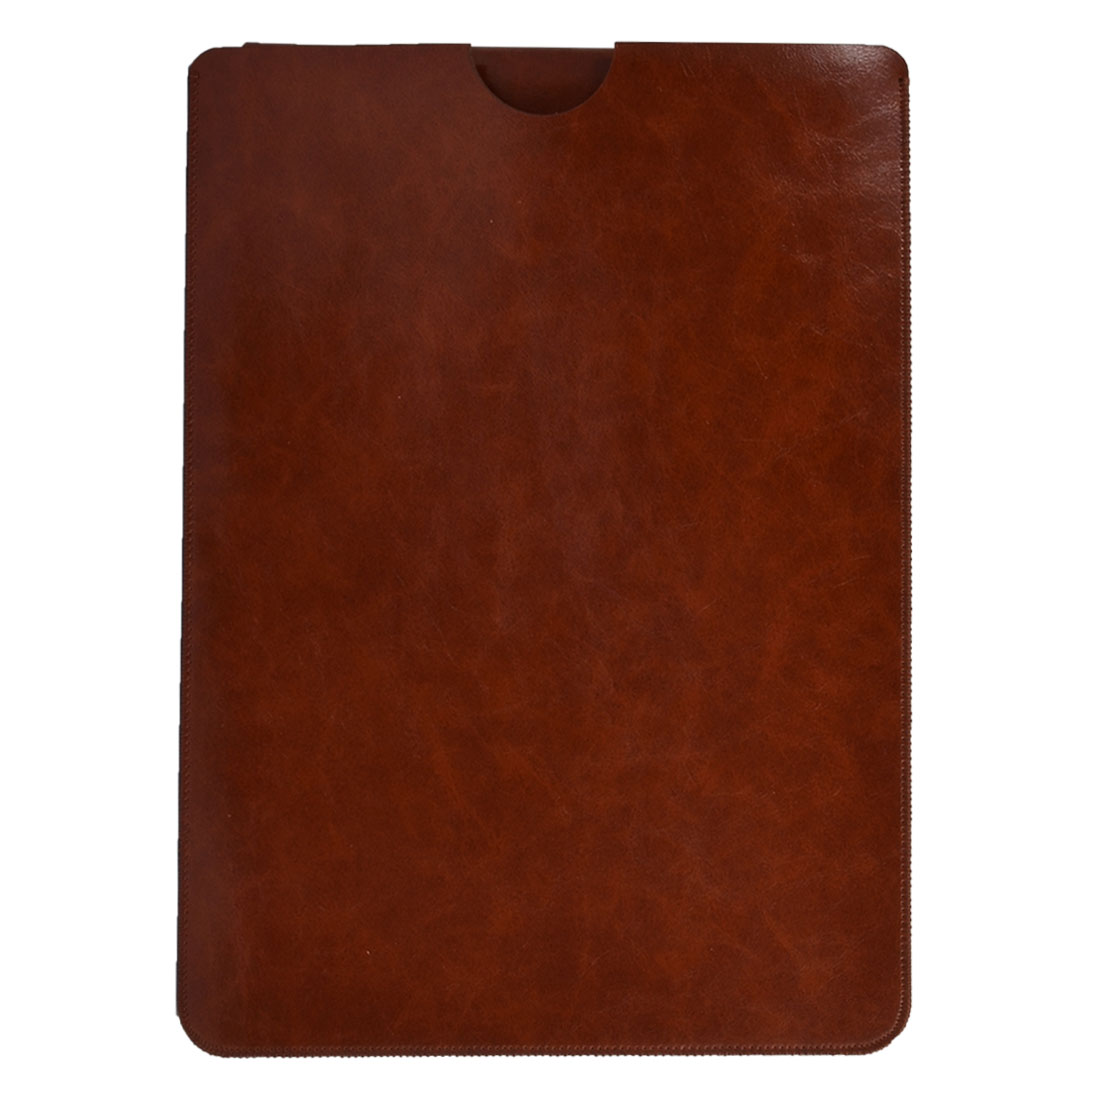 PC Notebook PU Leather Scratch Protective Laptop Sleeve Brown for Macbook 12 Inch